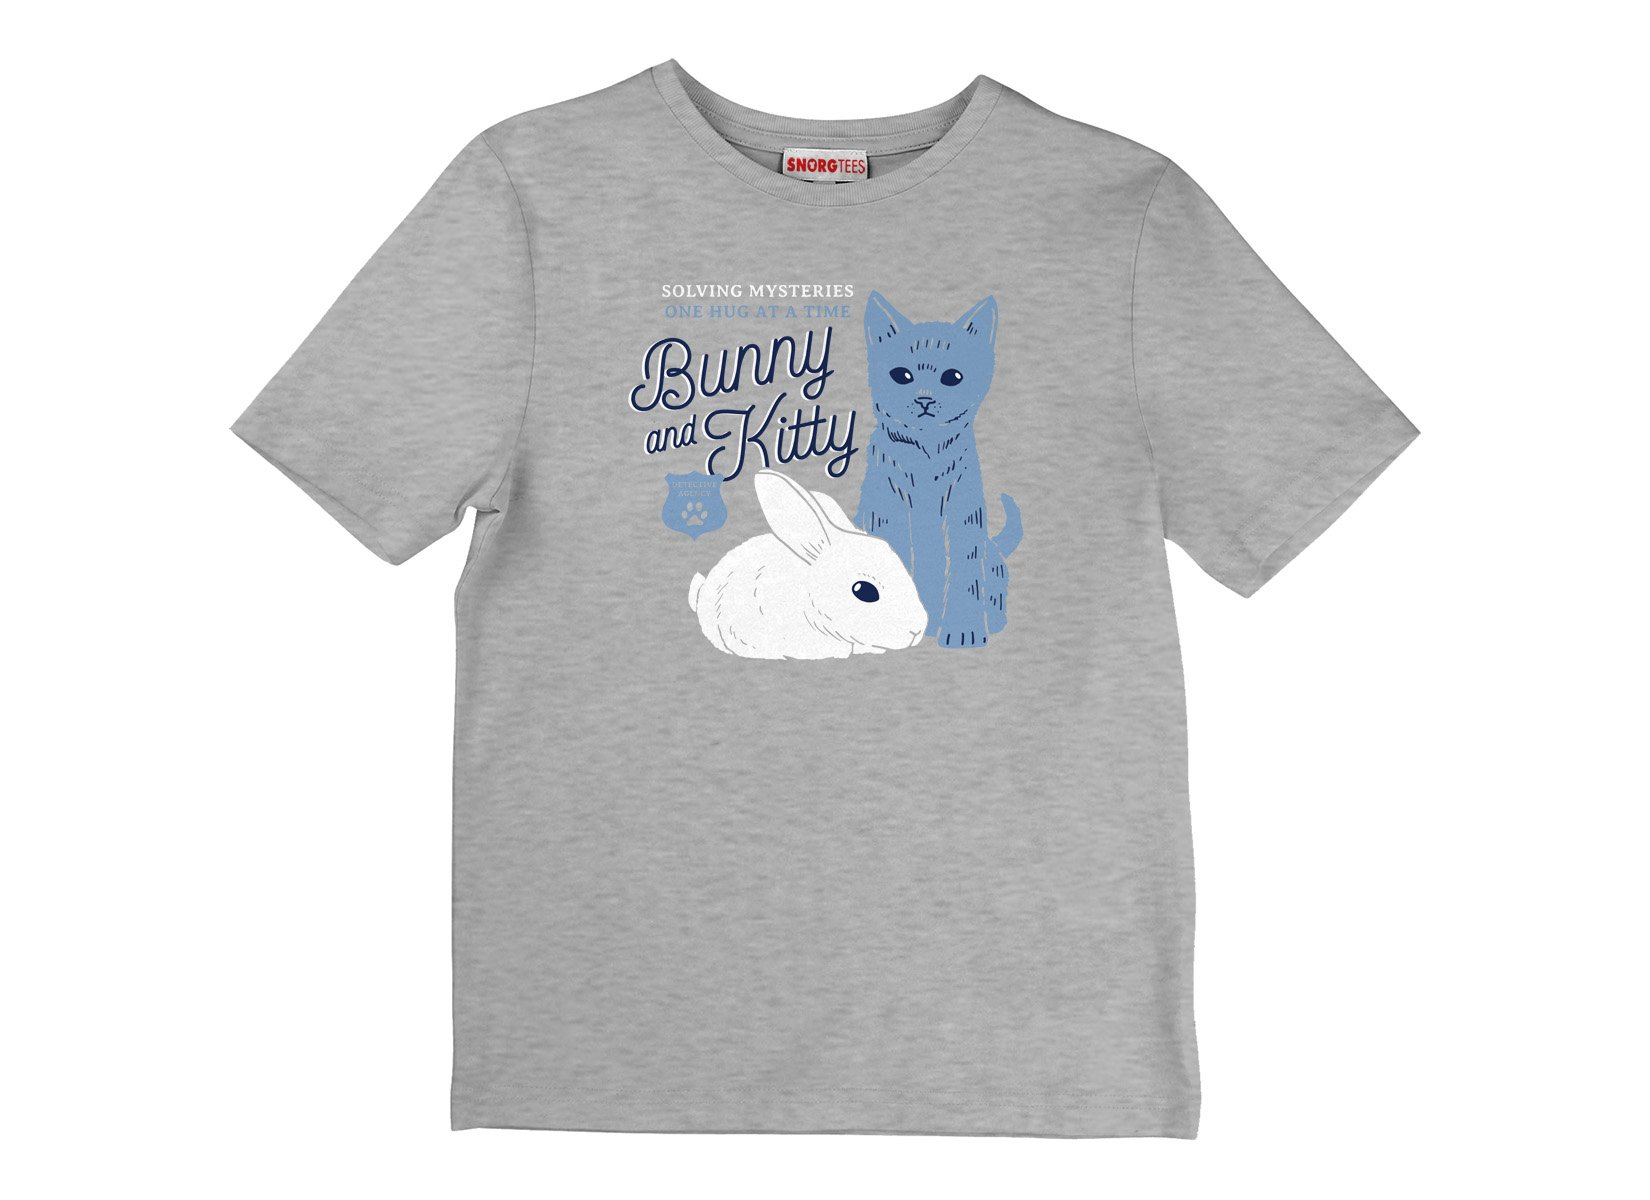 Bunny And Kitty on Kids T-Shirt